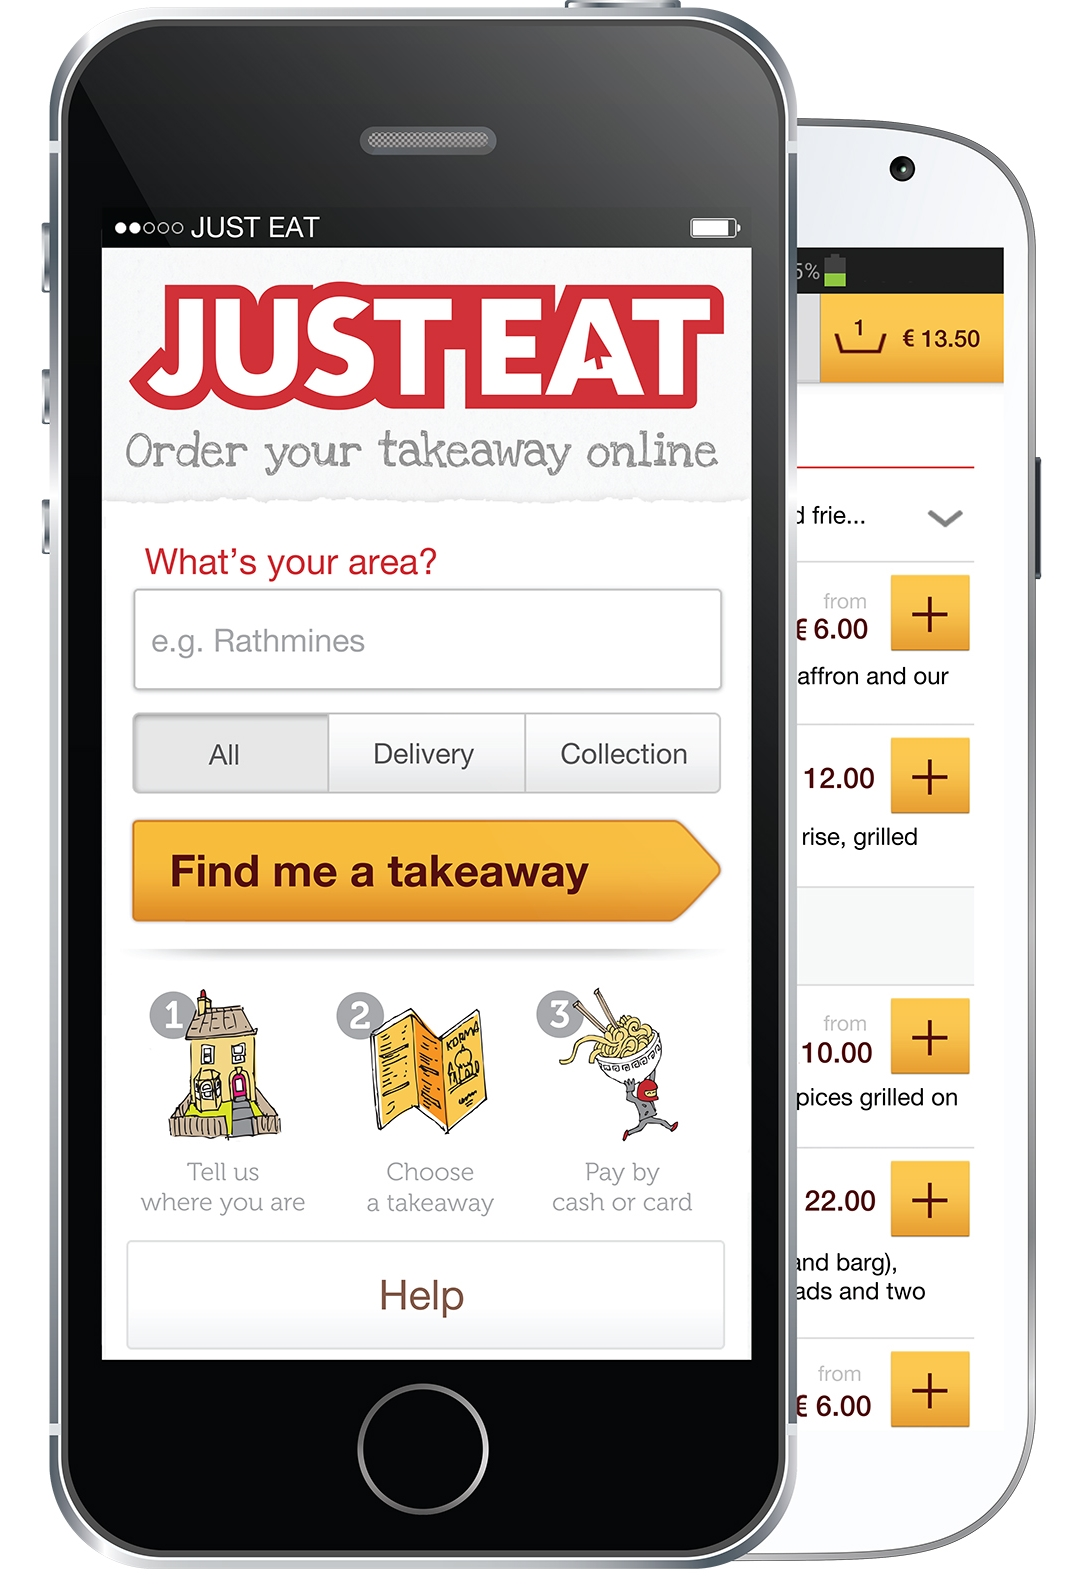 Majority of Just Eat Takeaway Orders Now Come From Mobile